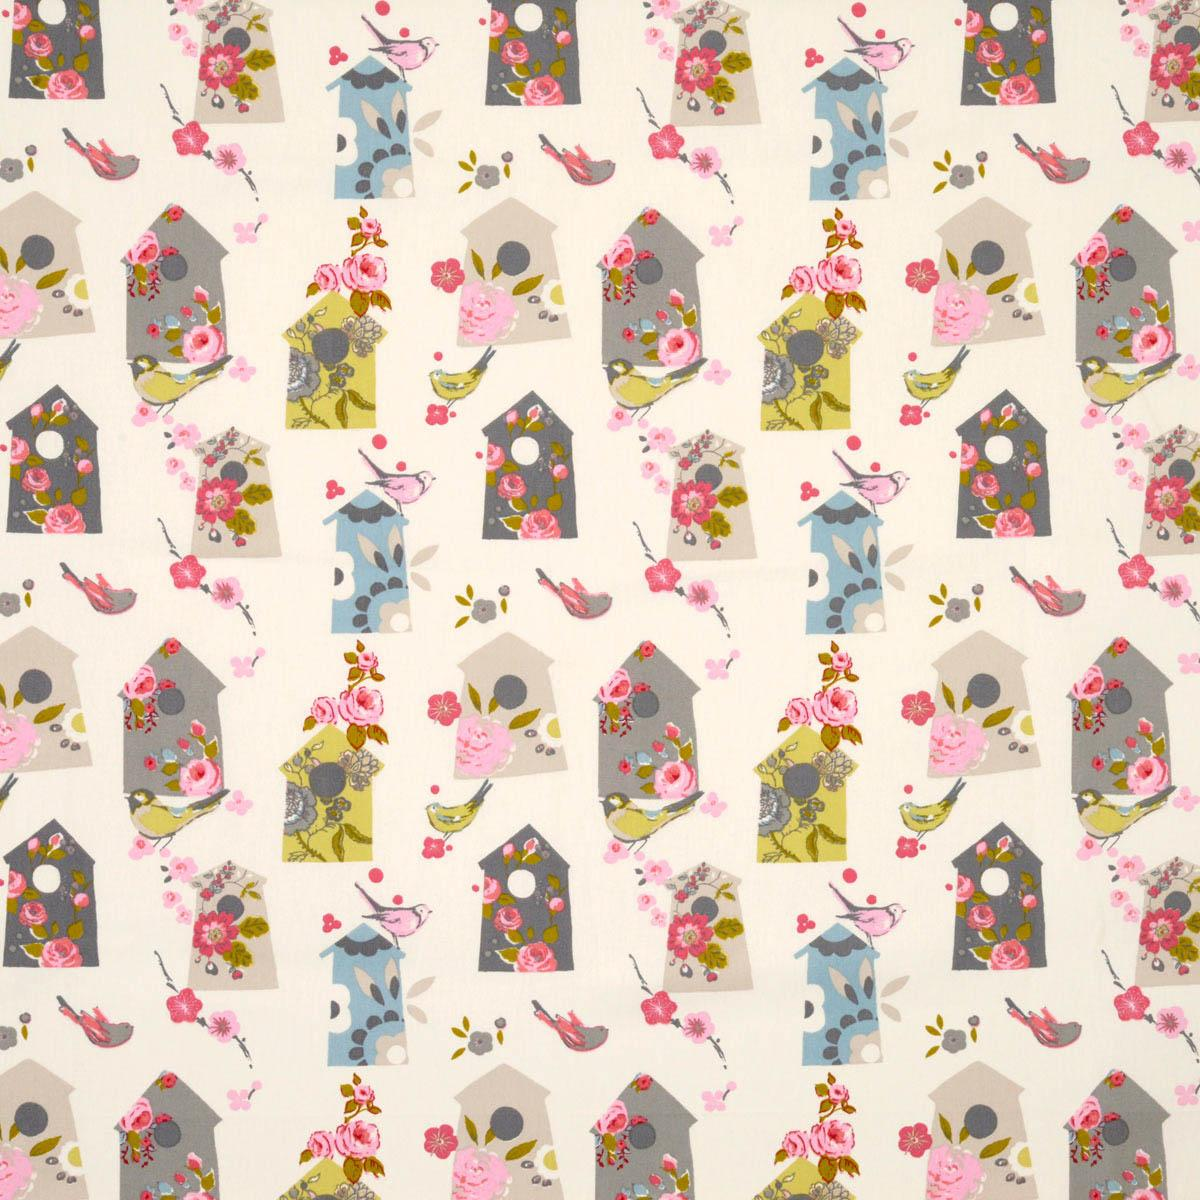 Birdhouse Curtain Fabric Natural Free UK Delivery